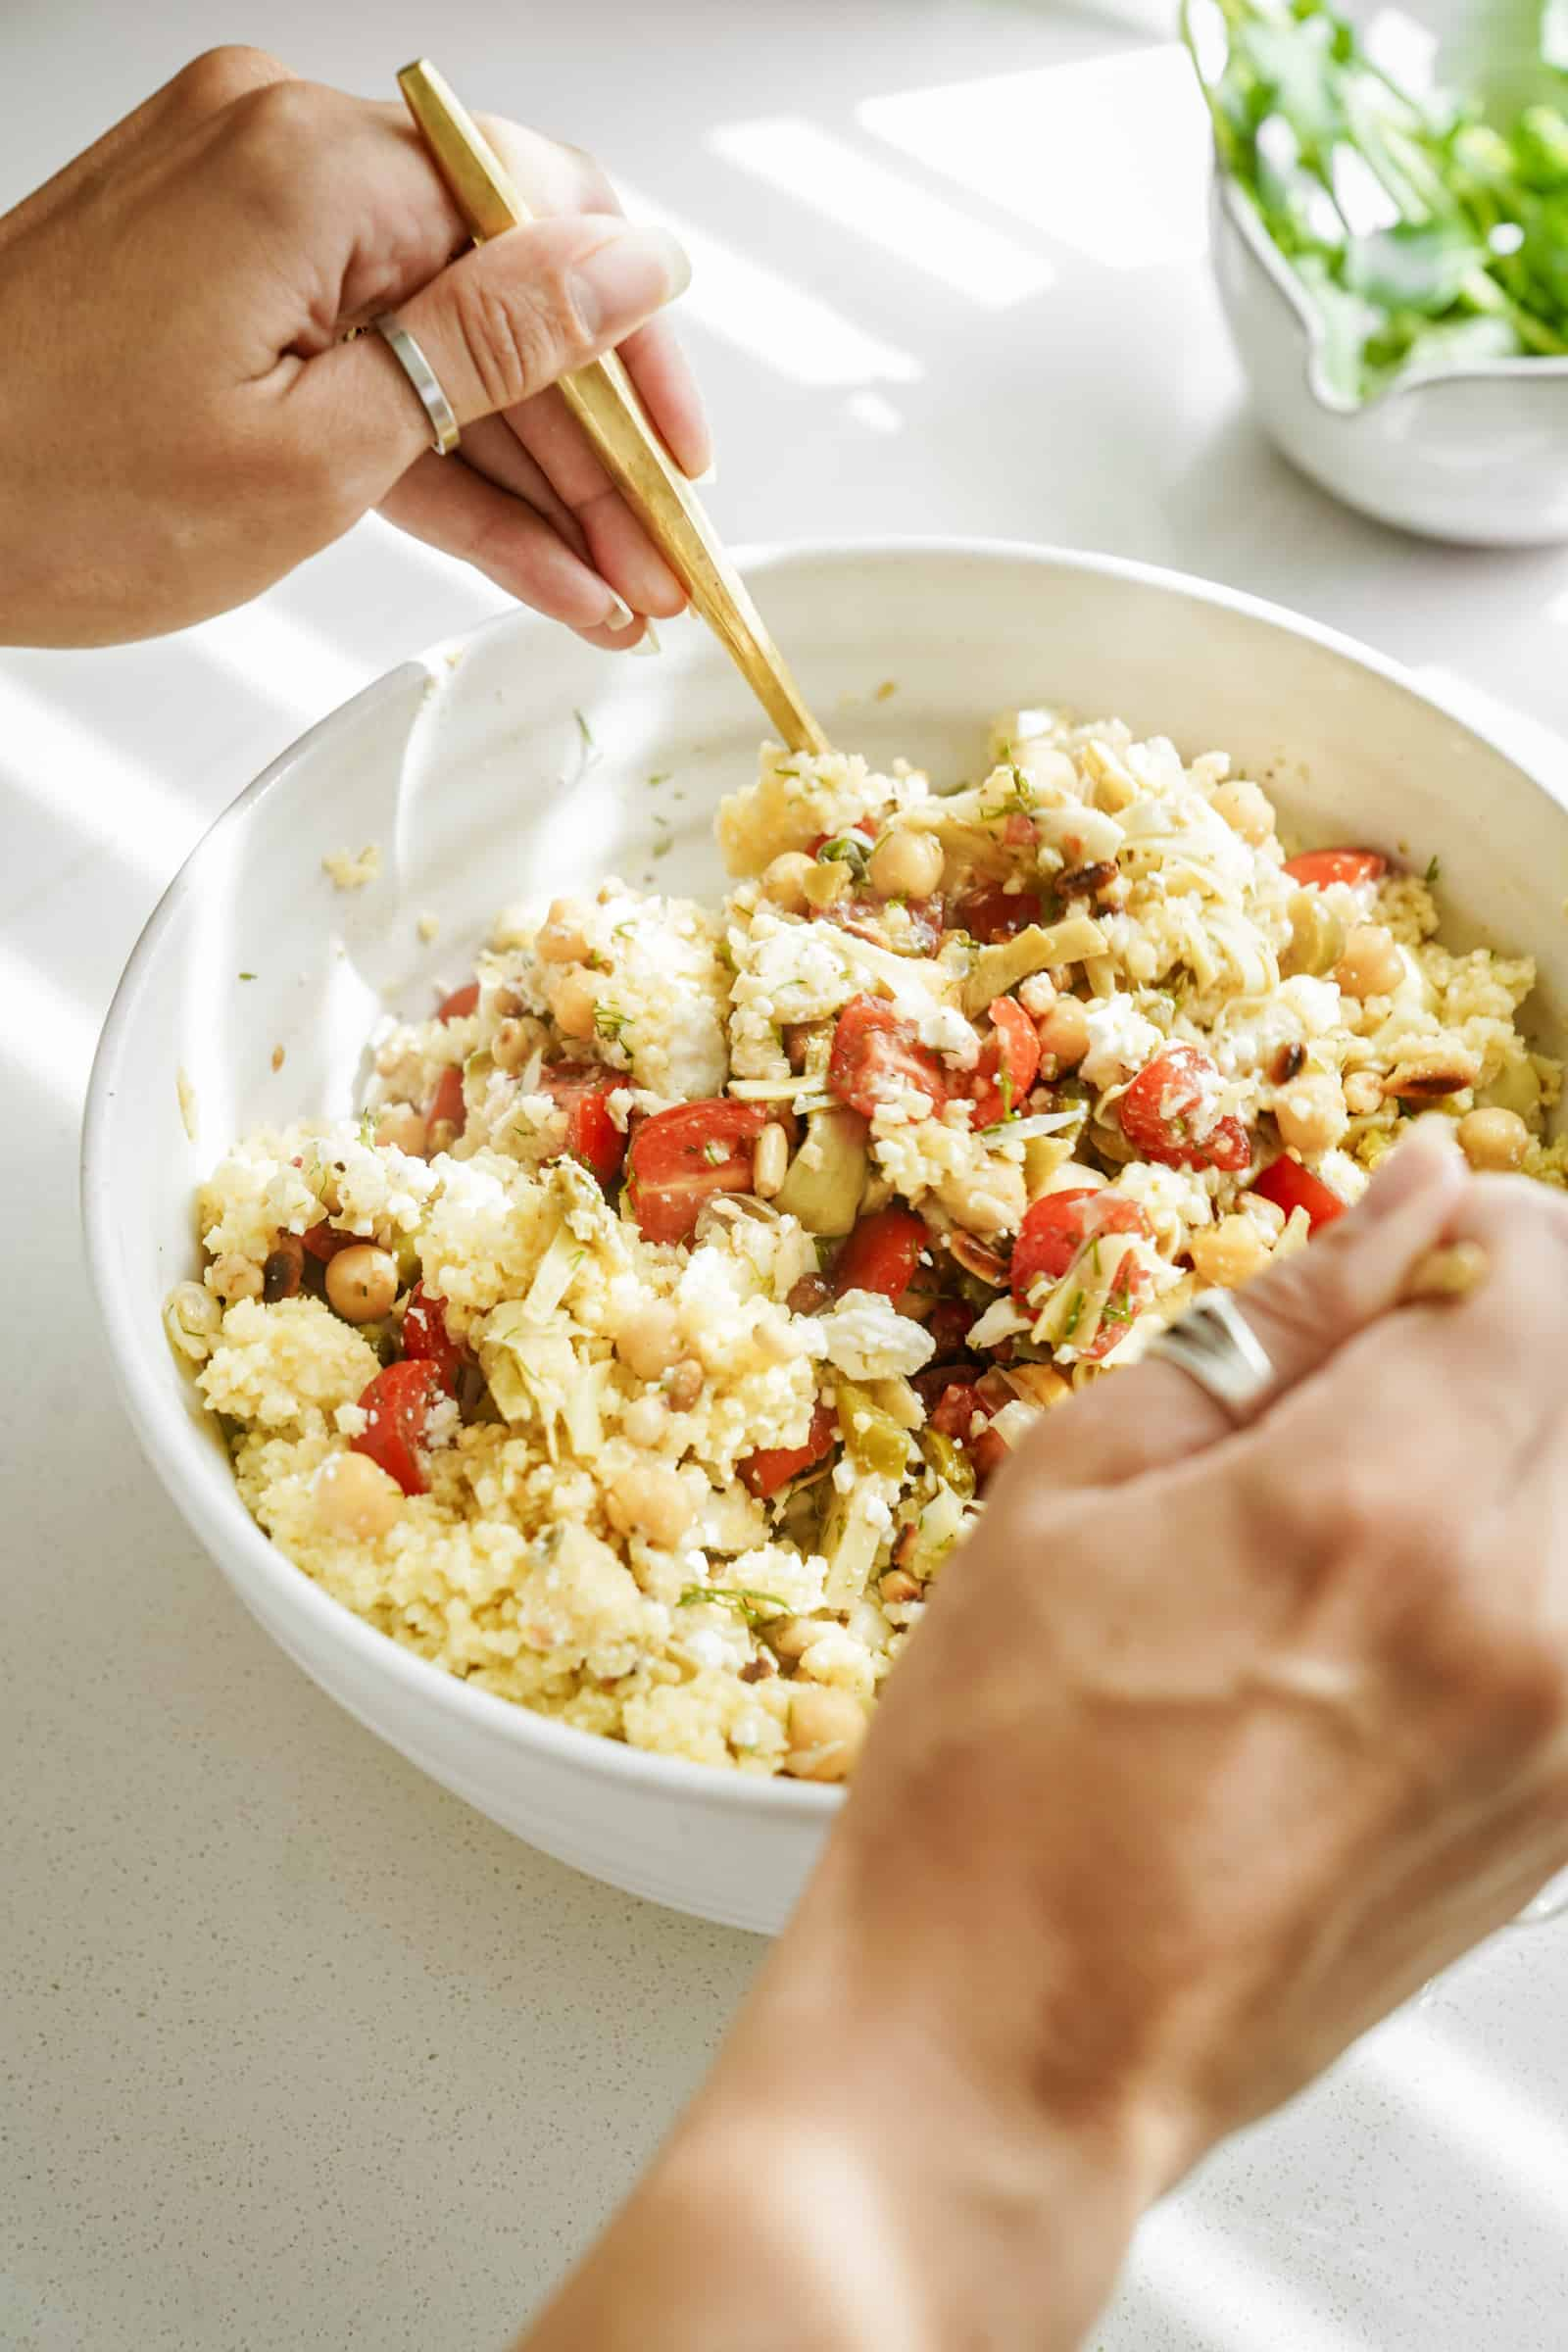 All ingredients being added to the Mediterranean Salad Recipe in a large serving bowl